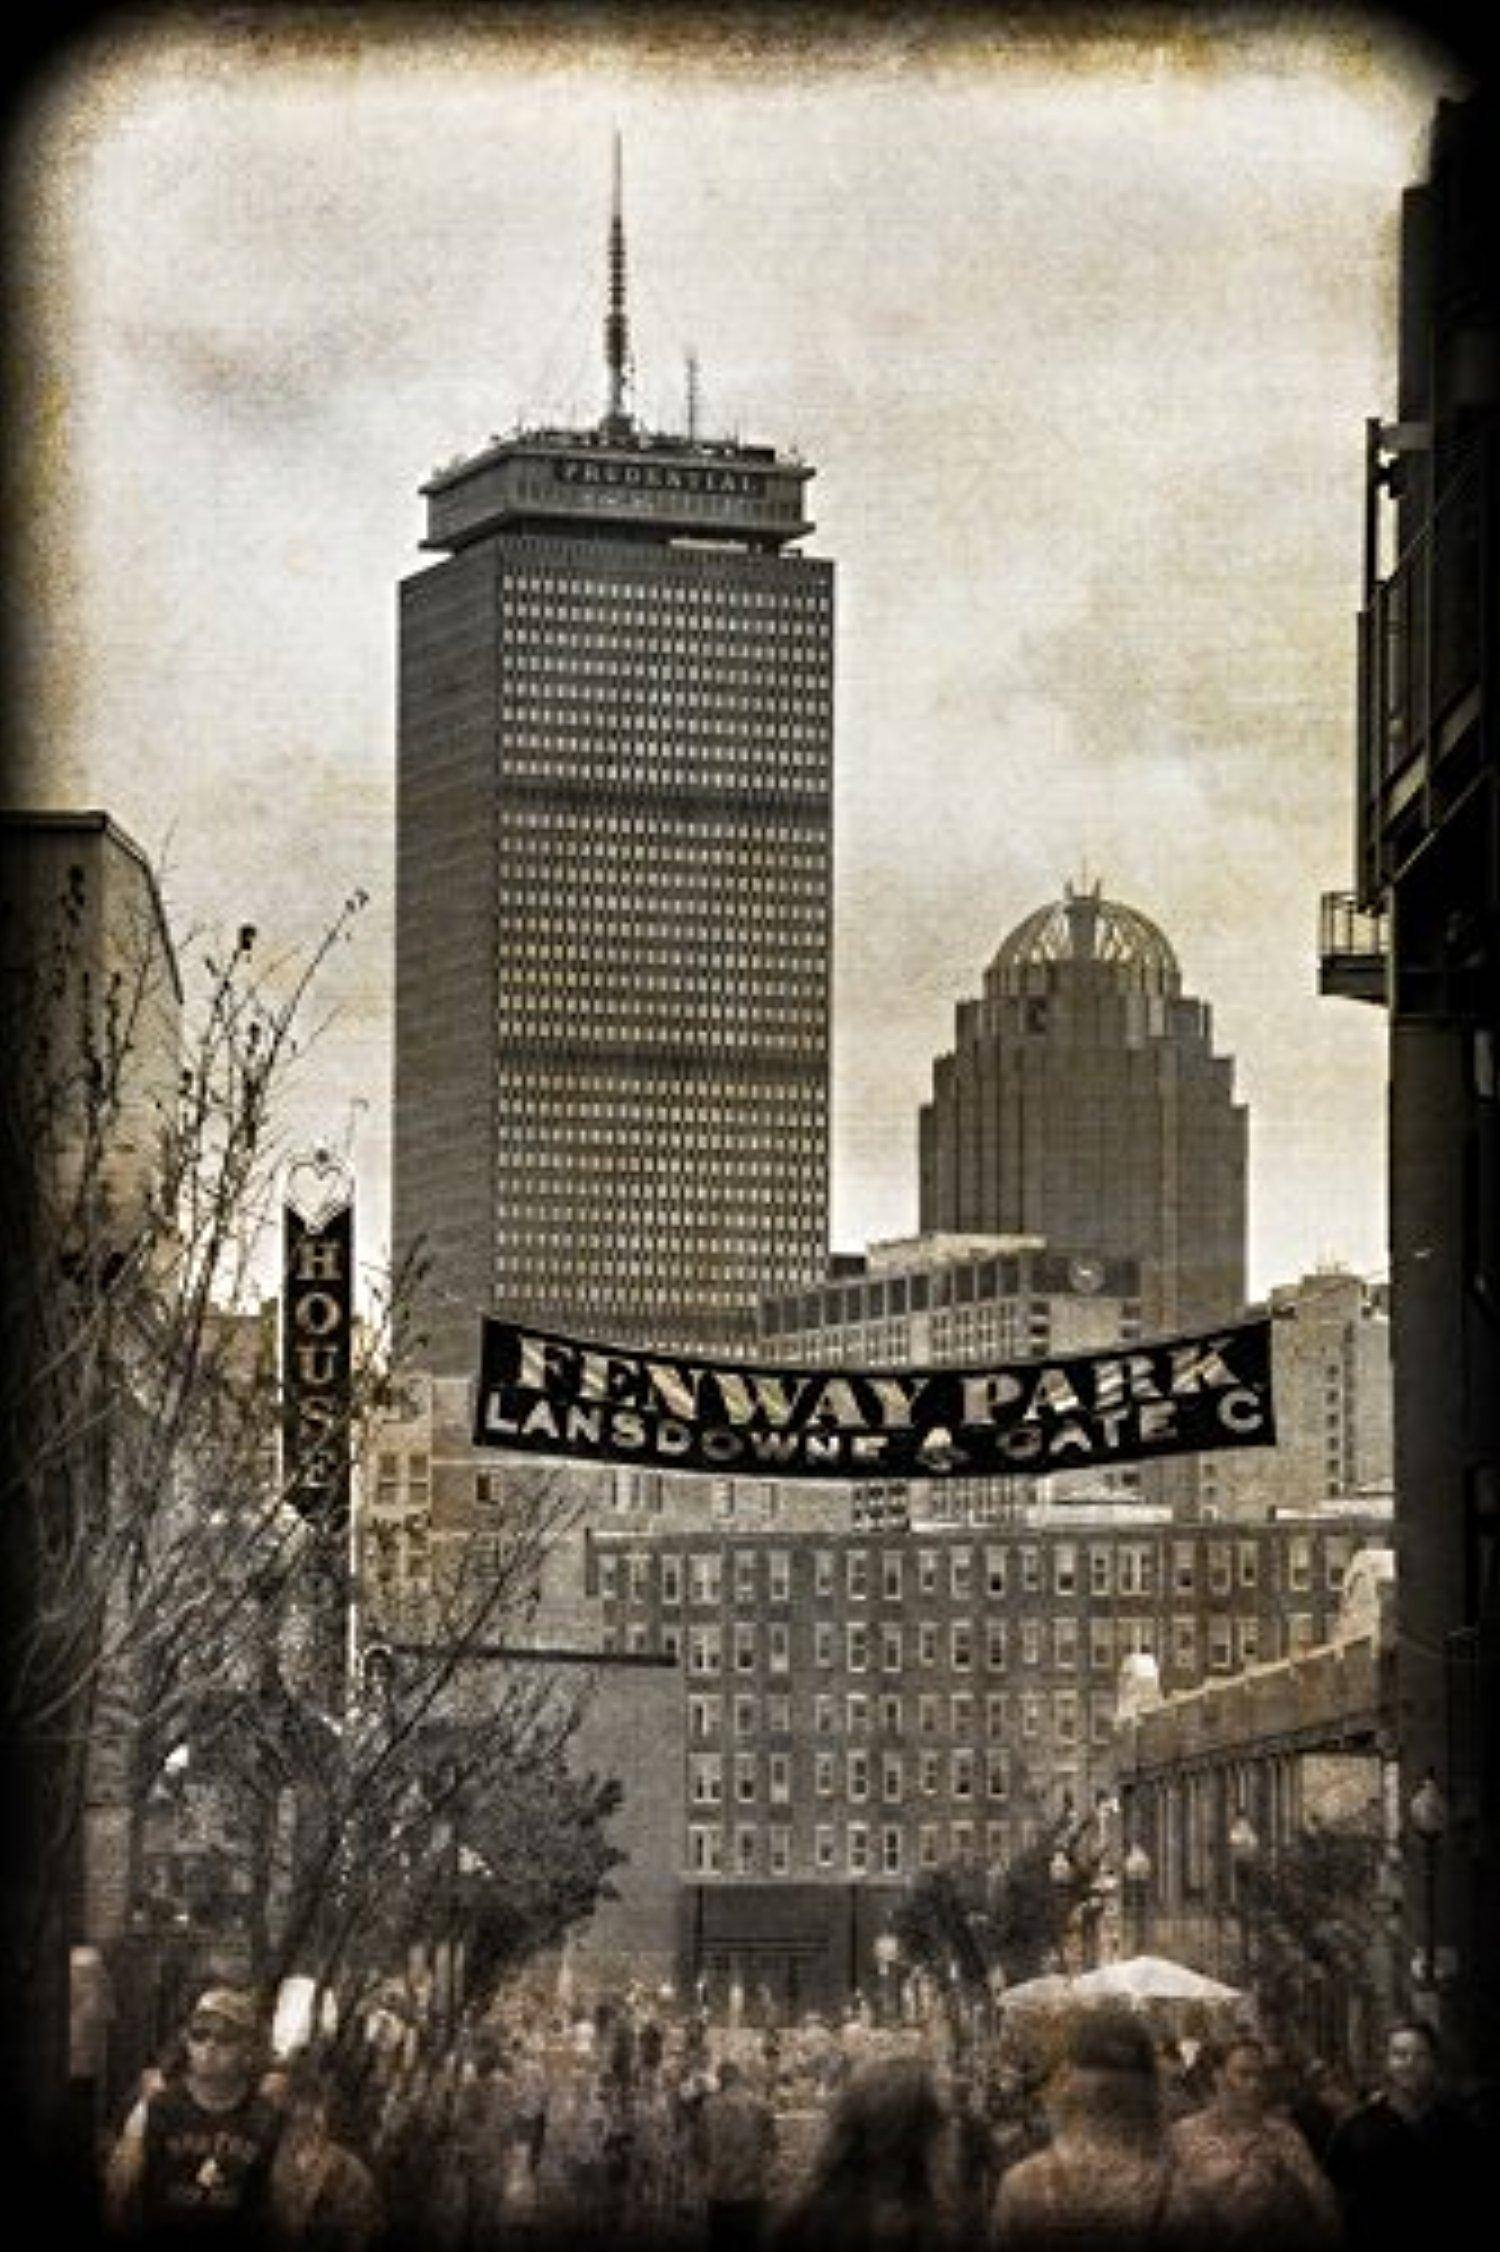 Fenway Park Vintage Print – Vintage Red Sox Wall Art – Boston With Regard To Current Red Sox Wall Art (View 16 of 23)